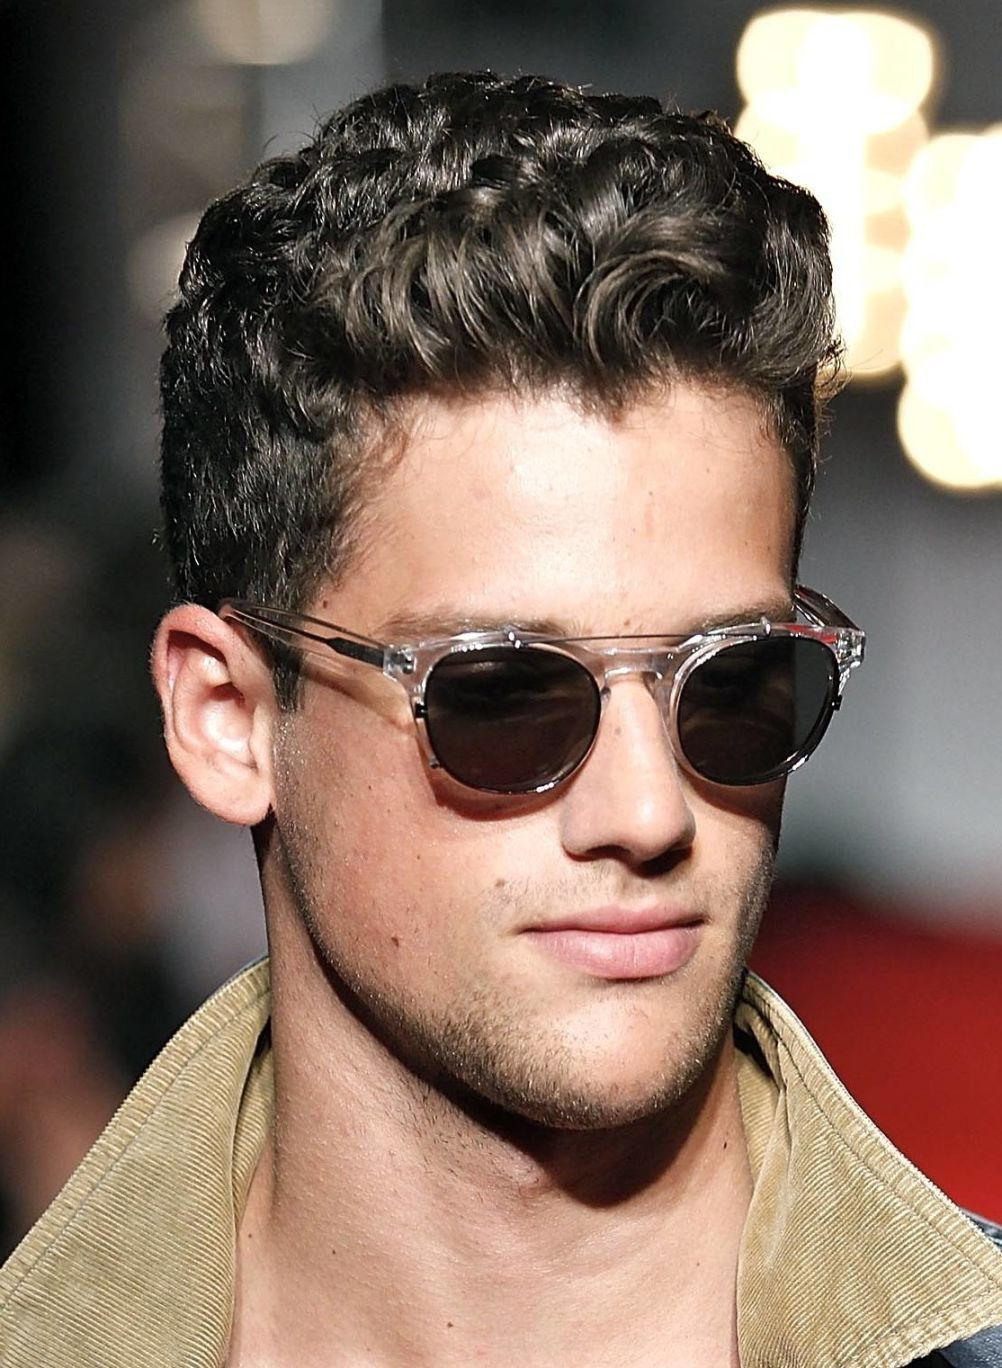 Sexiest Curly Hairstyles For Men   Curly hair men, Wavy ...